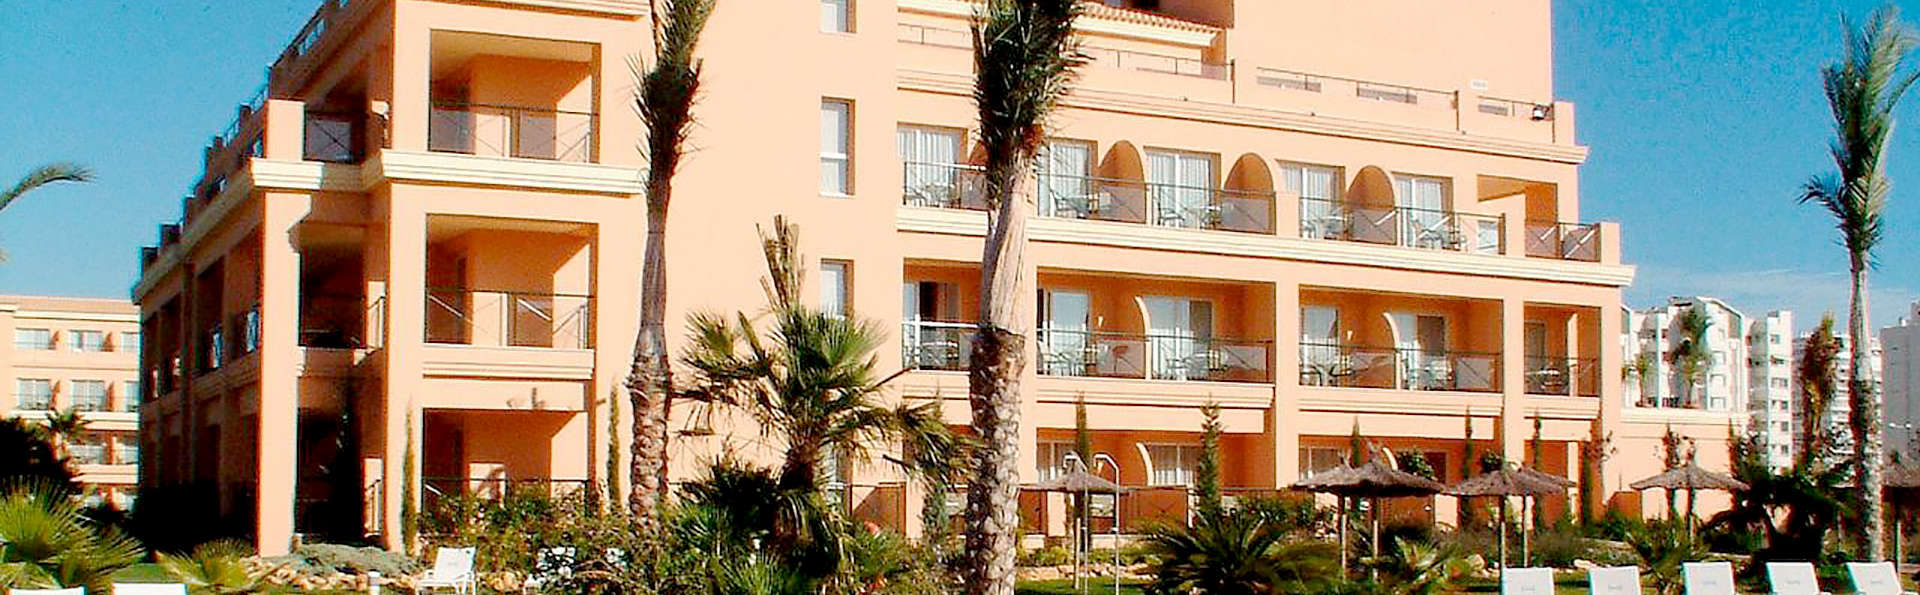 Hotel Alicante Golf - Edit_Front2.jpg